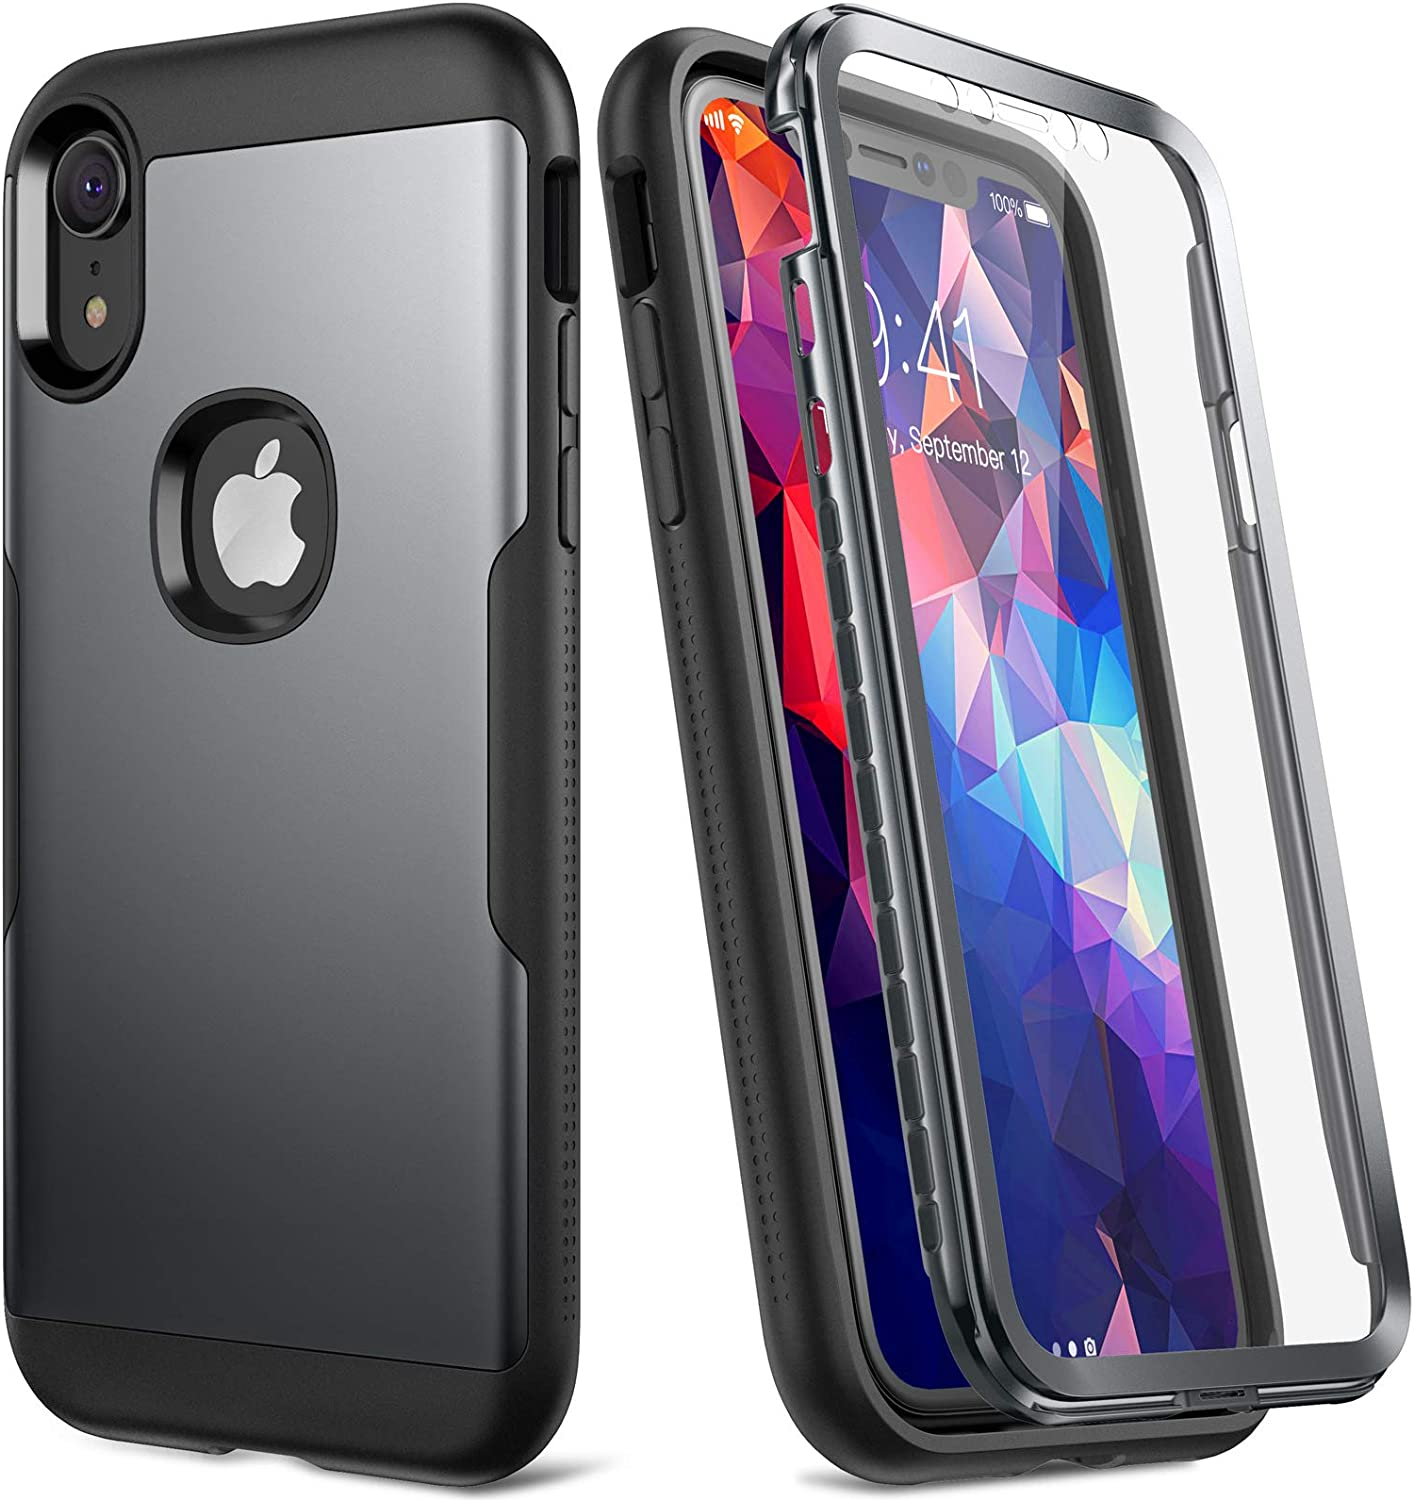 YOUMAKER Metallic Designed for iPhone XR Case, Full Body Rugged with Built-in Screen Protector Slim Fit Shockproof Cover for iPhone XR 6.1 Inch - Black